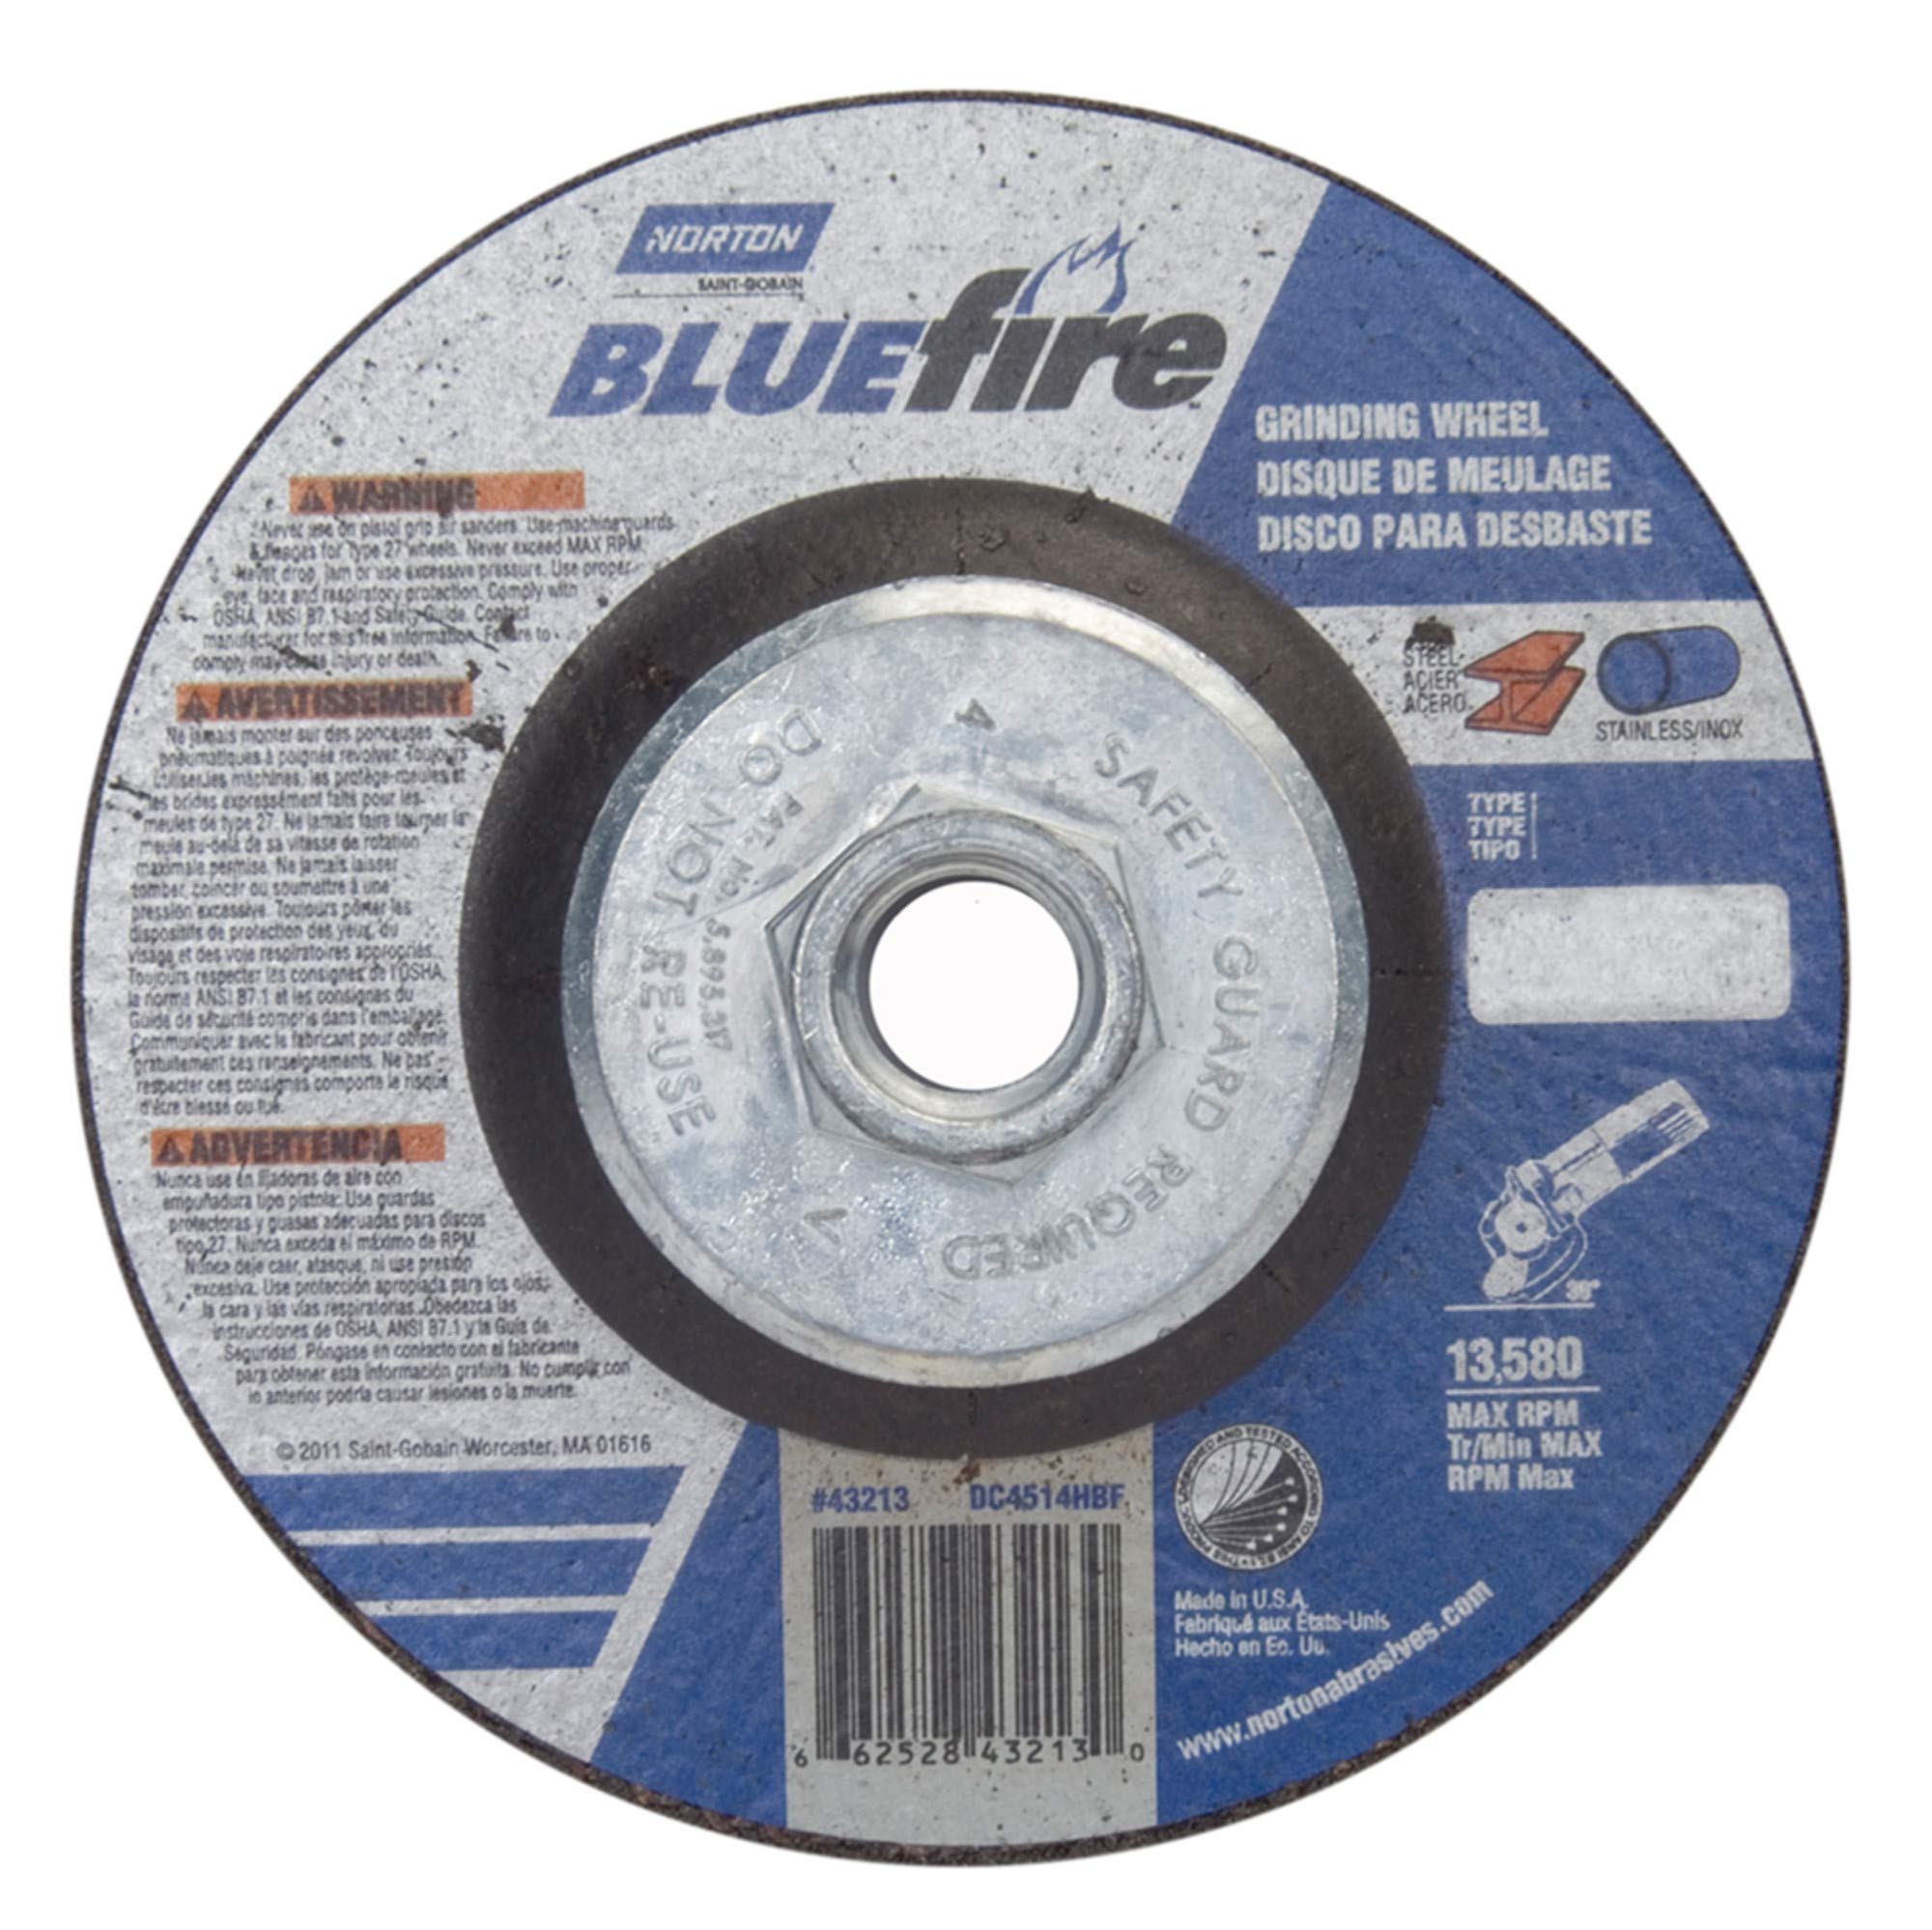 Norton Blue Fire Plus Depressed Center Abrasive Wheel, Type 27, Zirconia Alumina and Aluminum Oxide, 5/8''-11 Hub, 4-1/2'' Diameter x 1/4'' Thickness (Pack of 10)